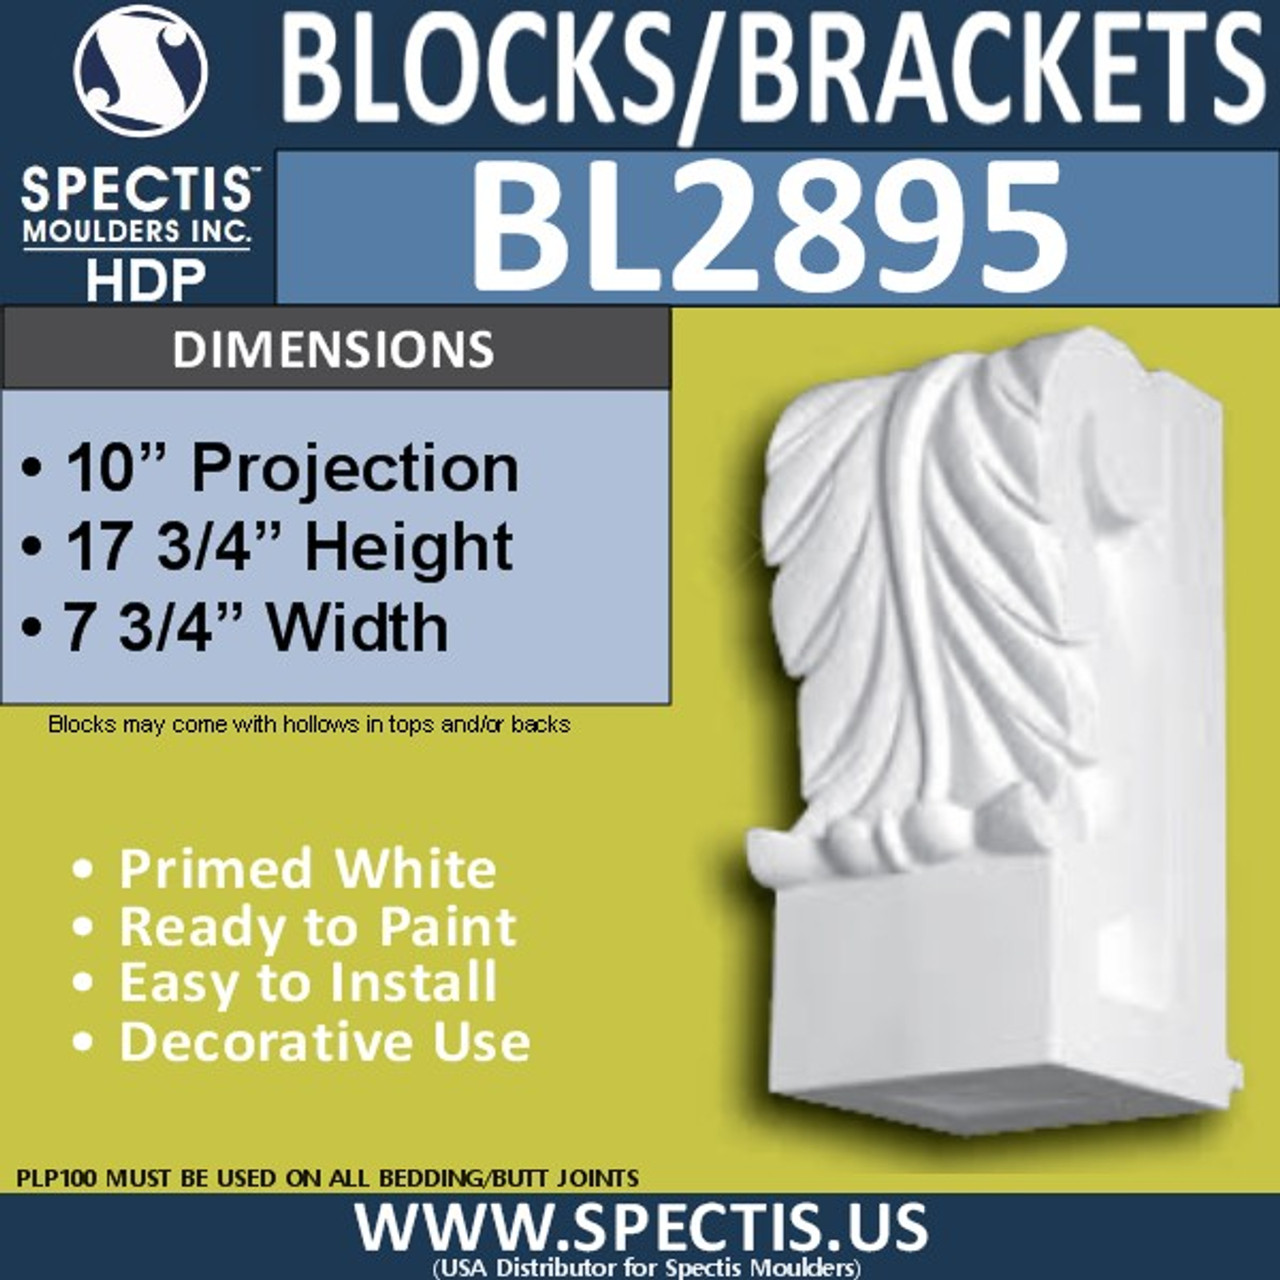 "BL2895 Eave Block or Bracket 7.6""W x 9.75""H x 17.75"" P"